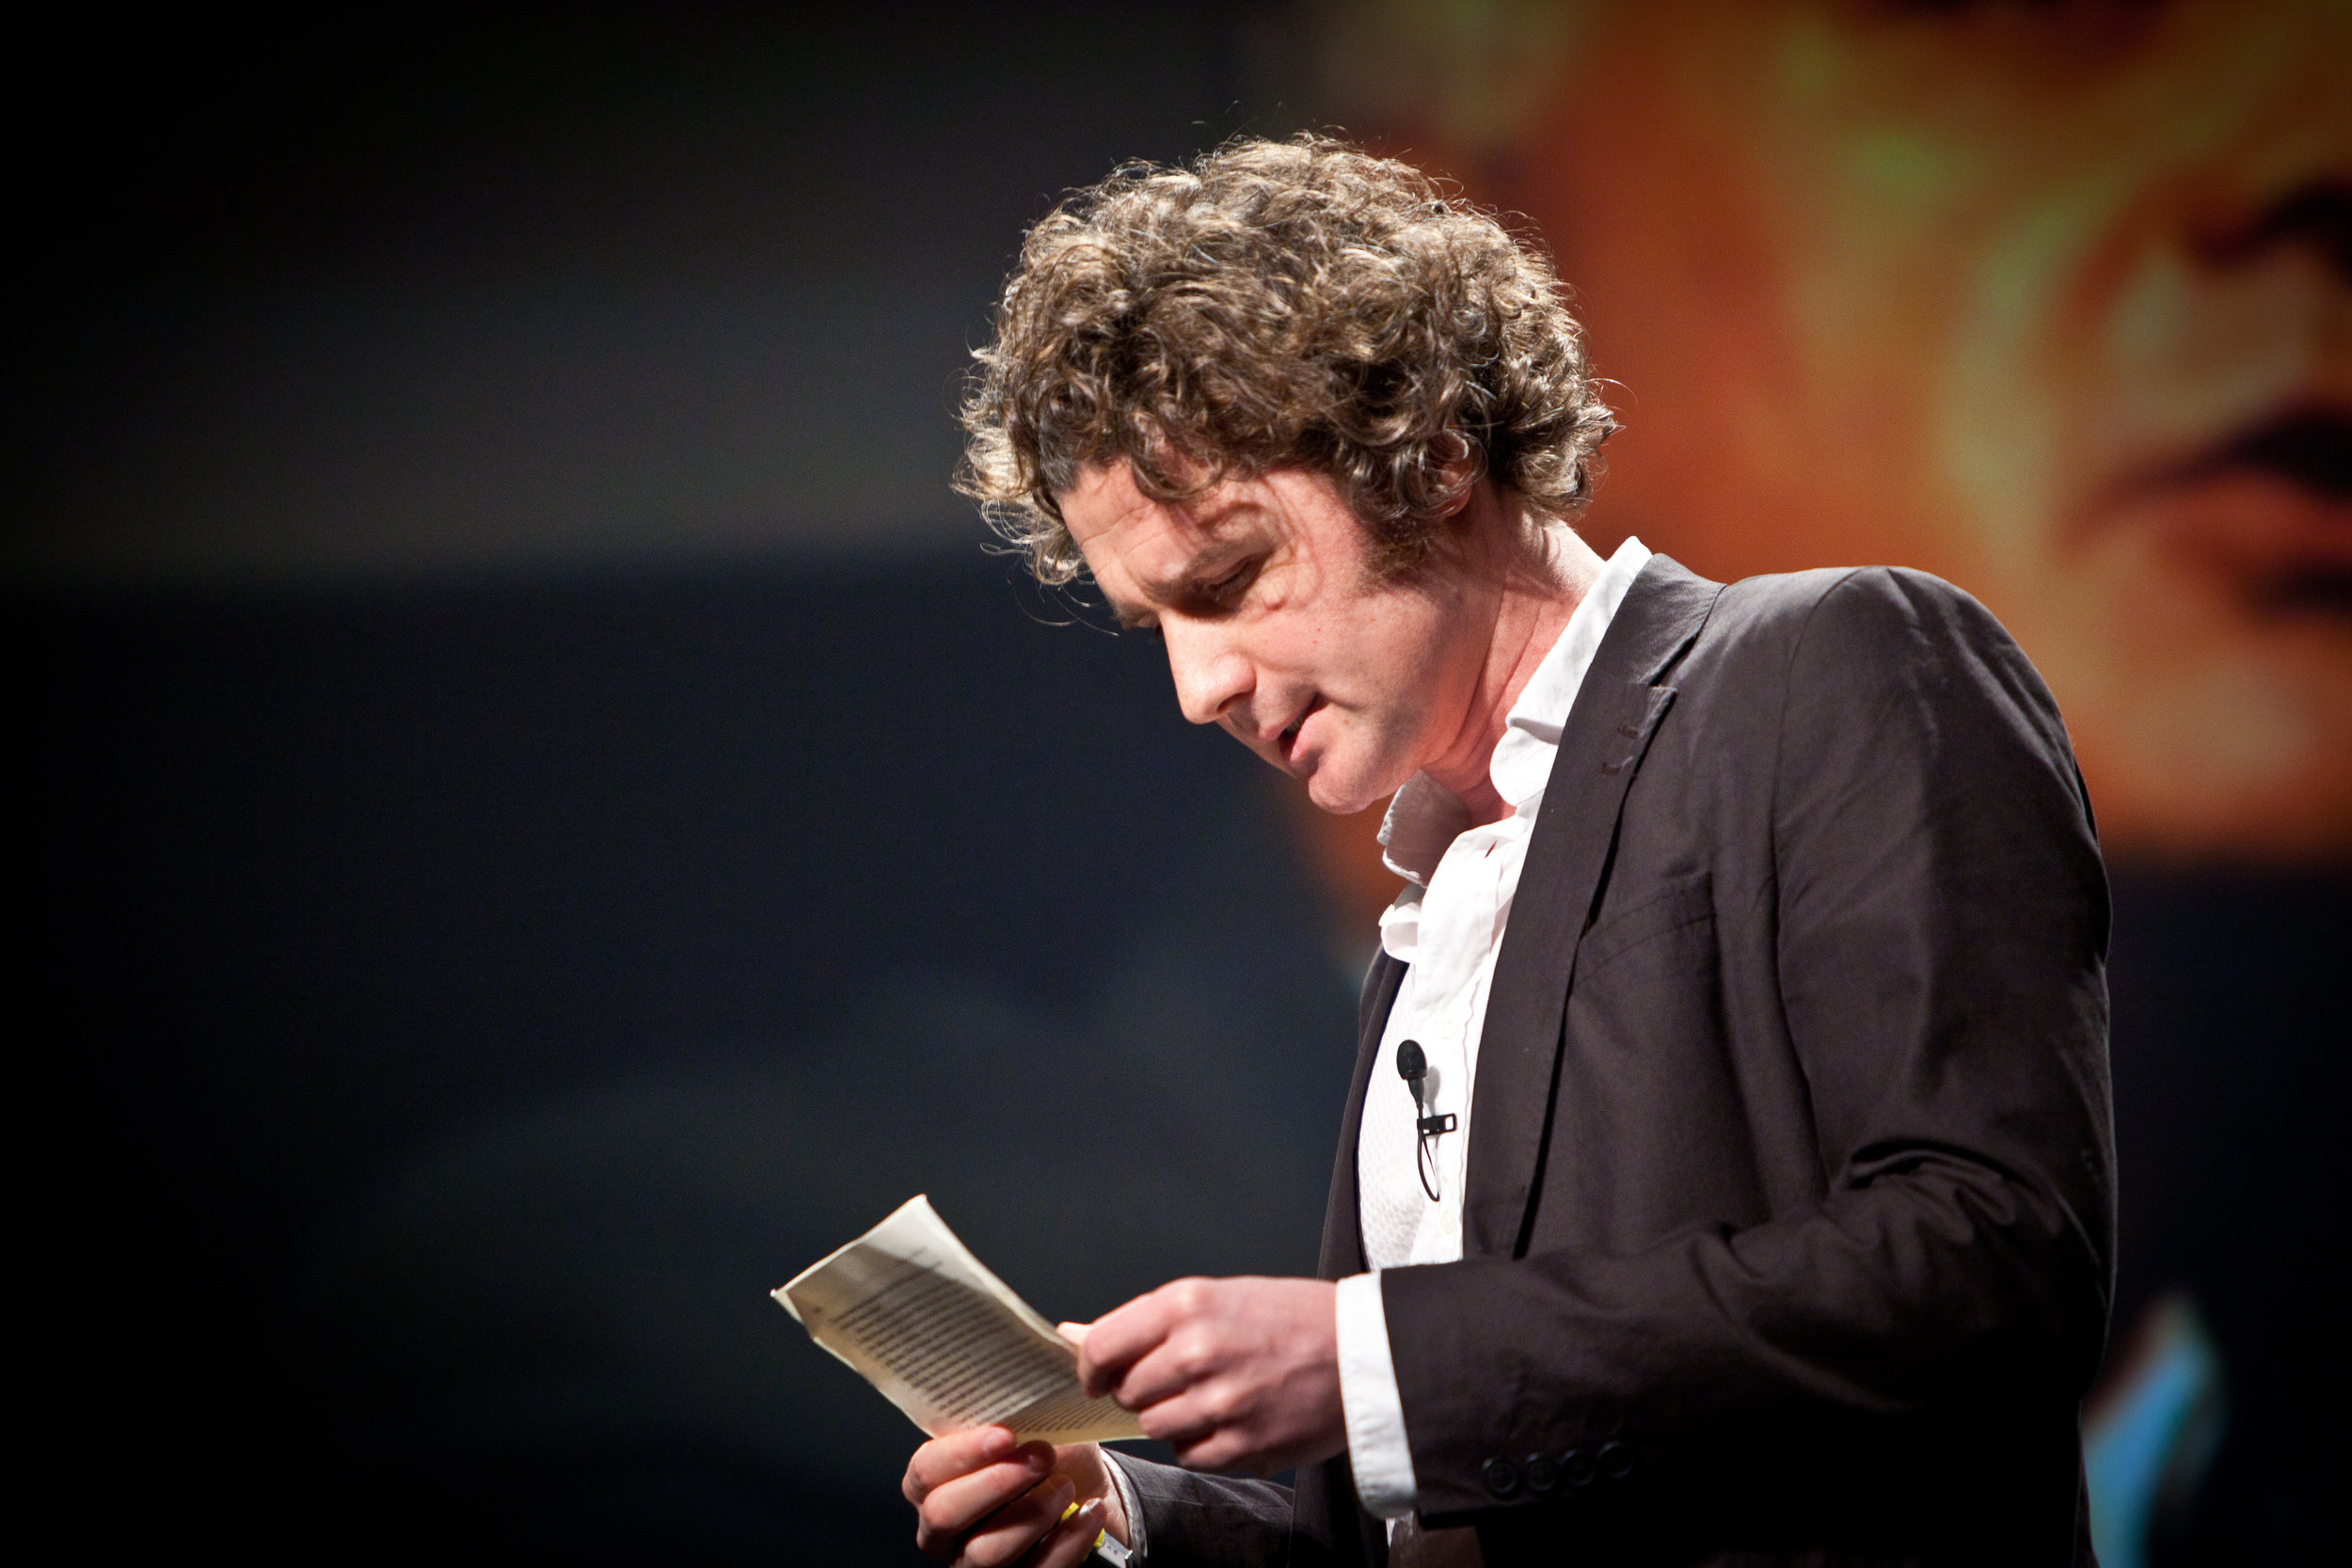 Ben Goldacre often gives free talks critiquing 'bad science,' including health scares or pseudoscience.   PopTech/Flickr   ( CC BY-SA 2.0 )